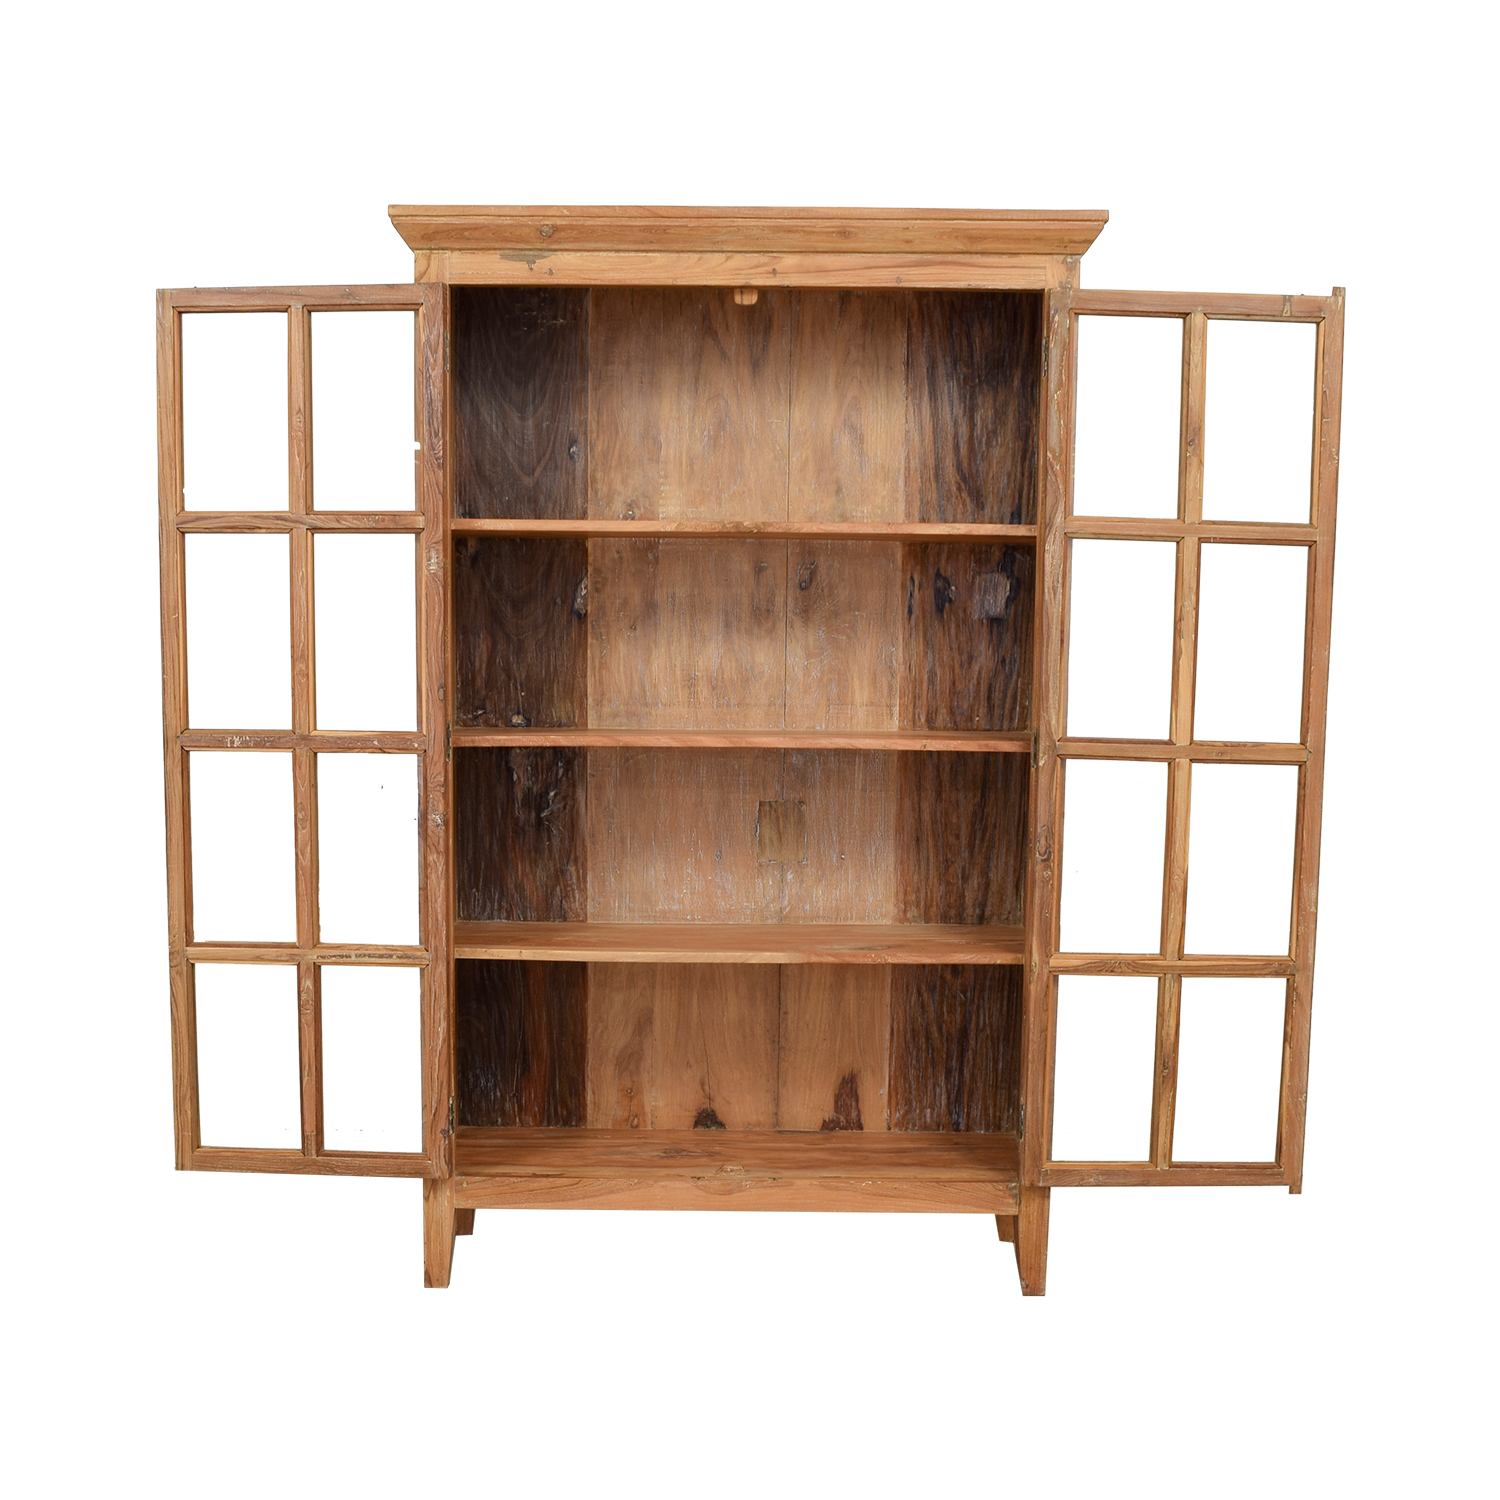 Buy Doors Online 77 Off Wood Hutch With French Doors Storage